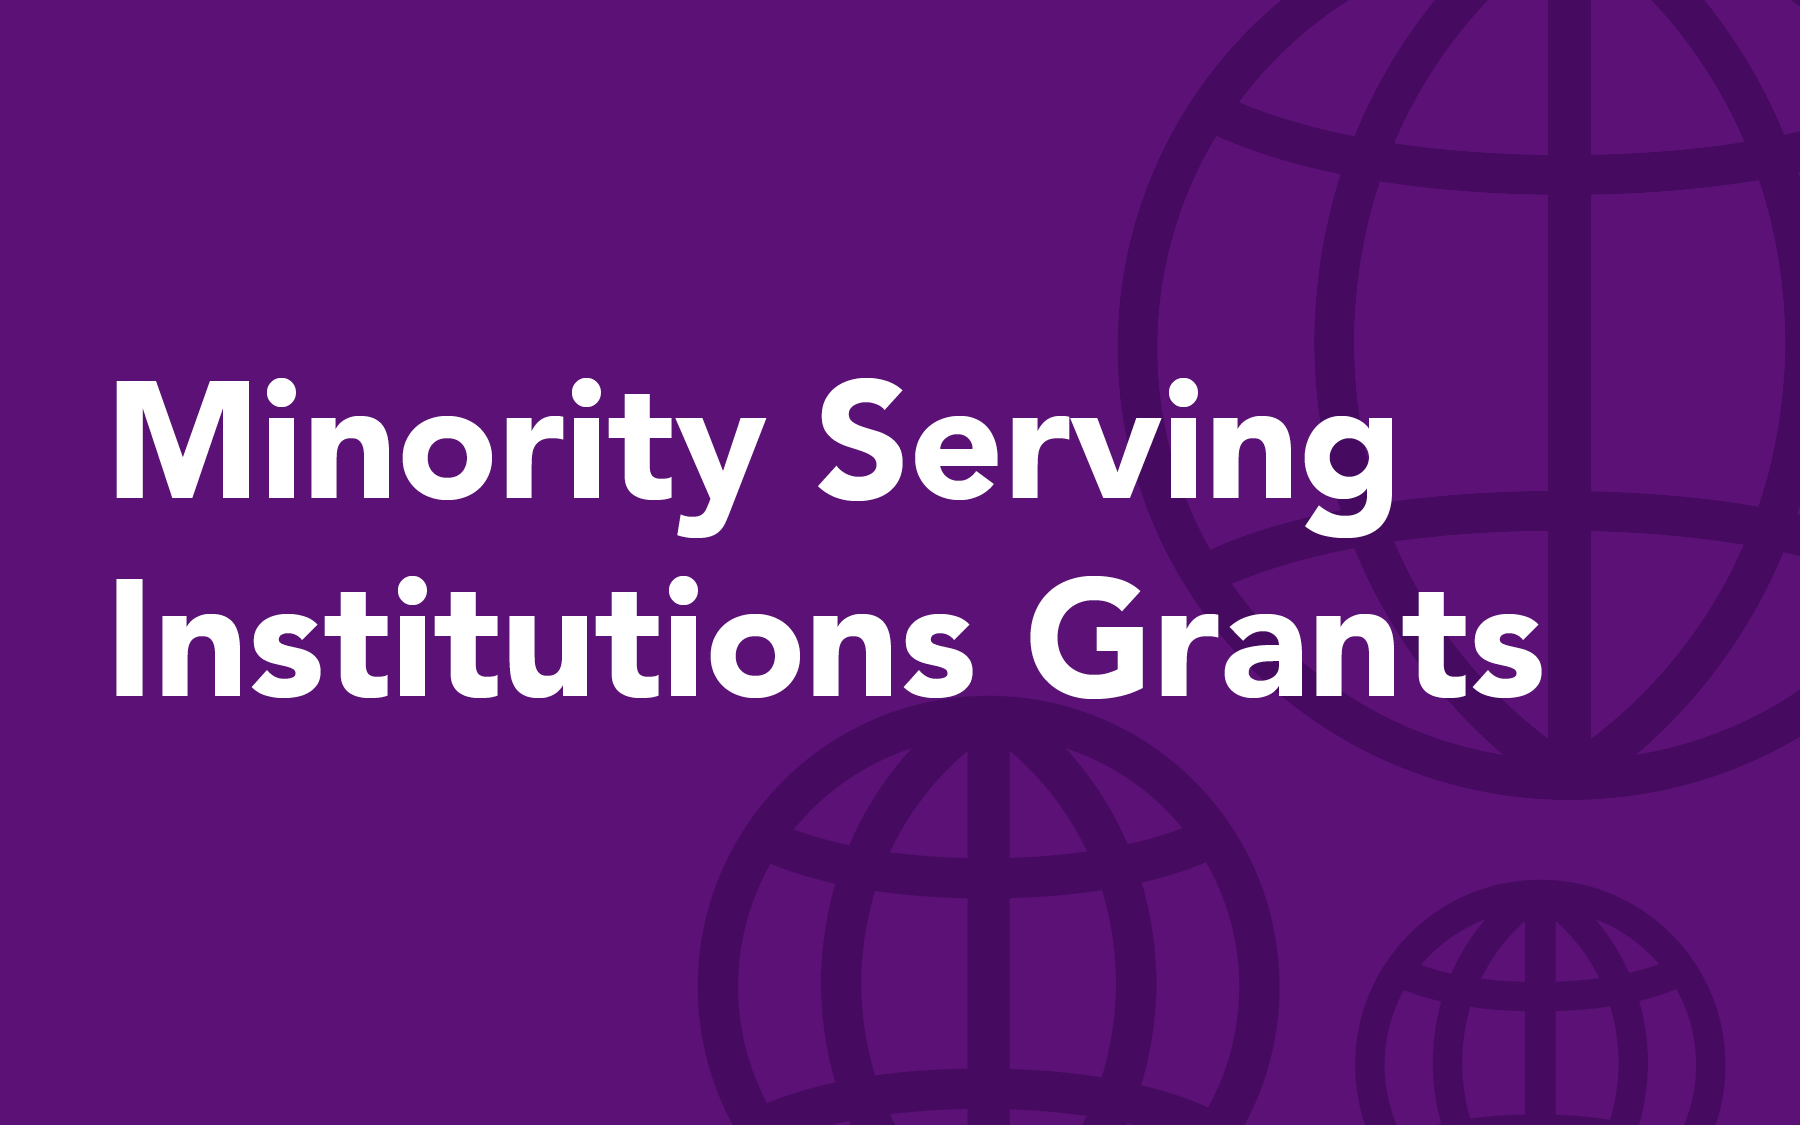 Minority Serving Institutions Grants